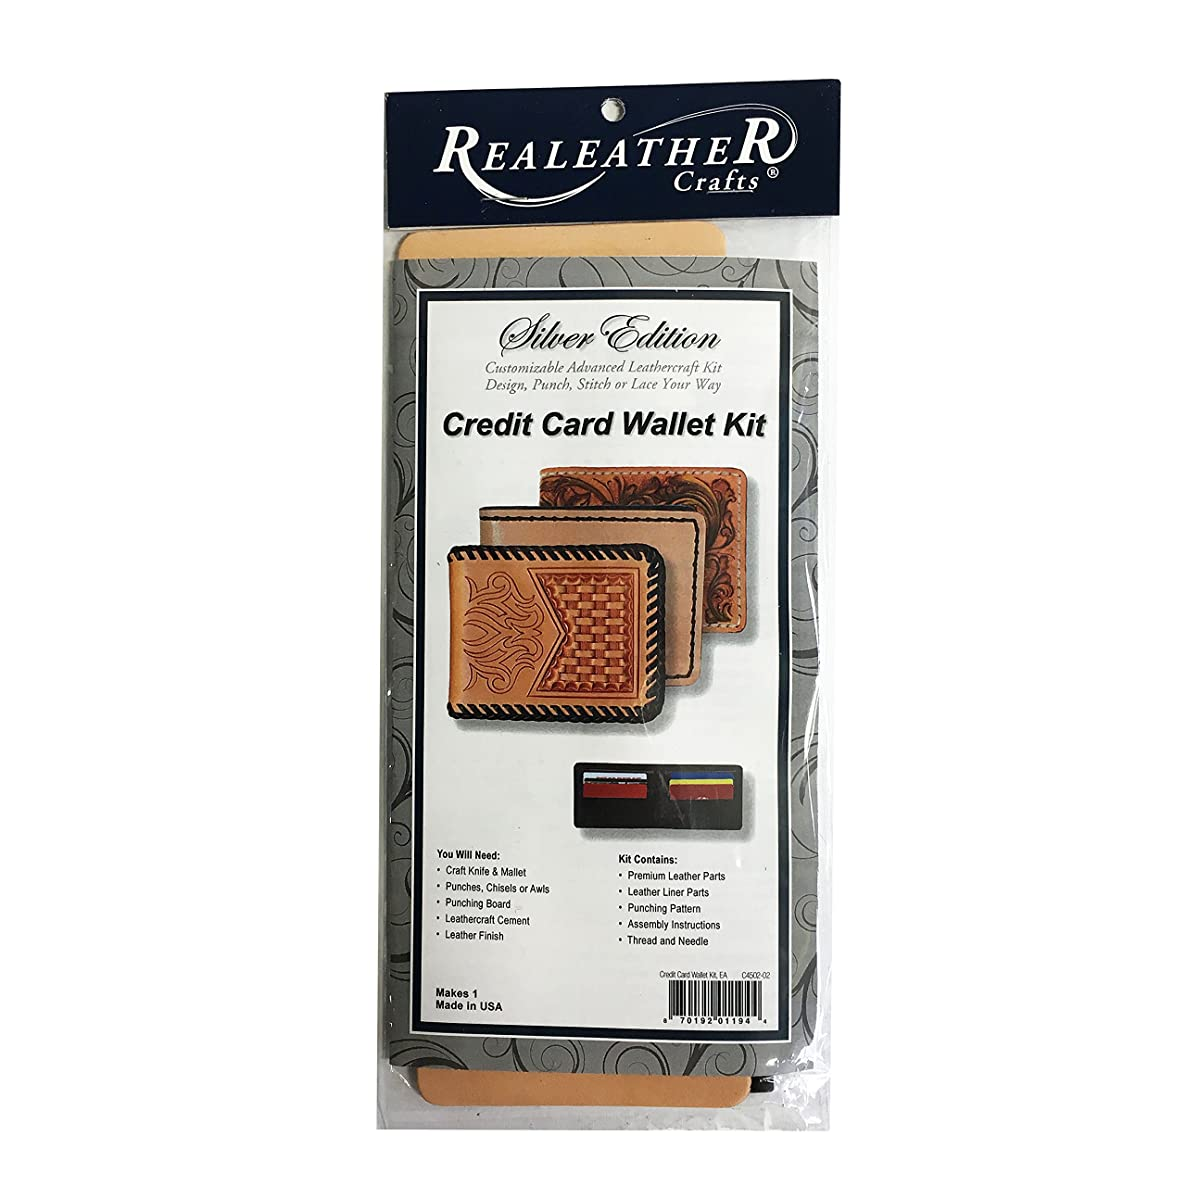 Realeather Silver Edition Credit Card Wallet Kit Leather Craft Kit